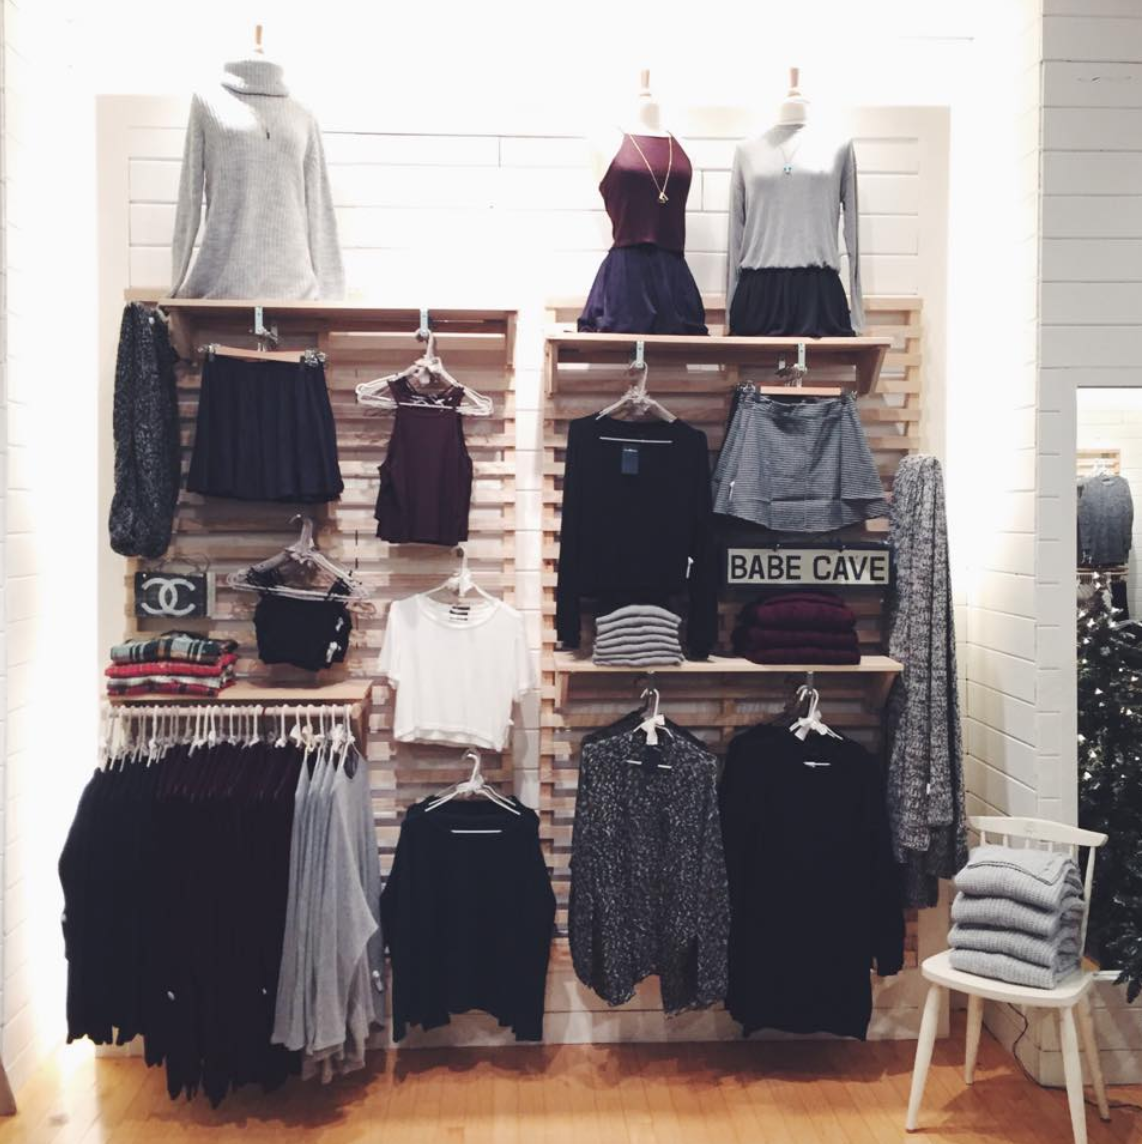 I also worked as a part-time visual merchandiser at Brandy Melville during university!